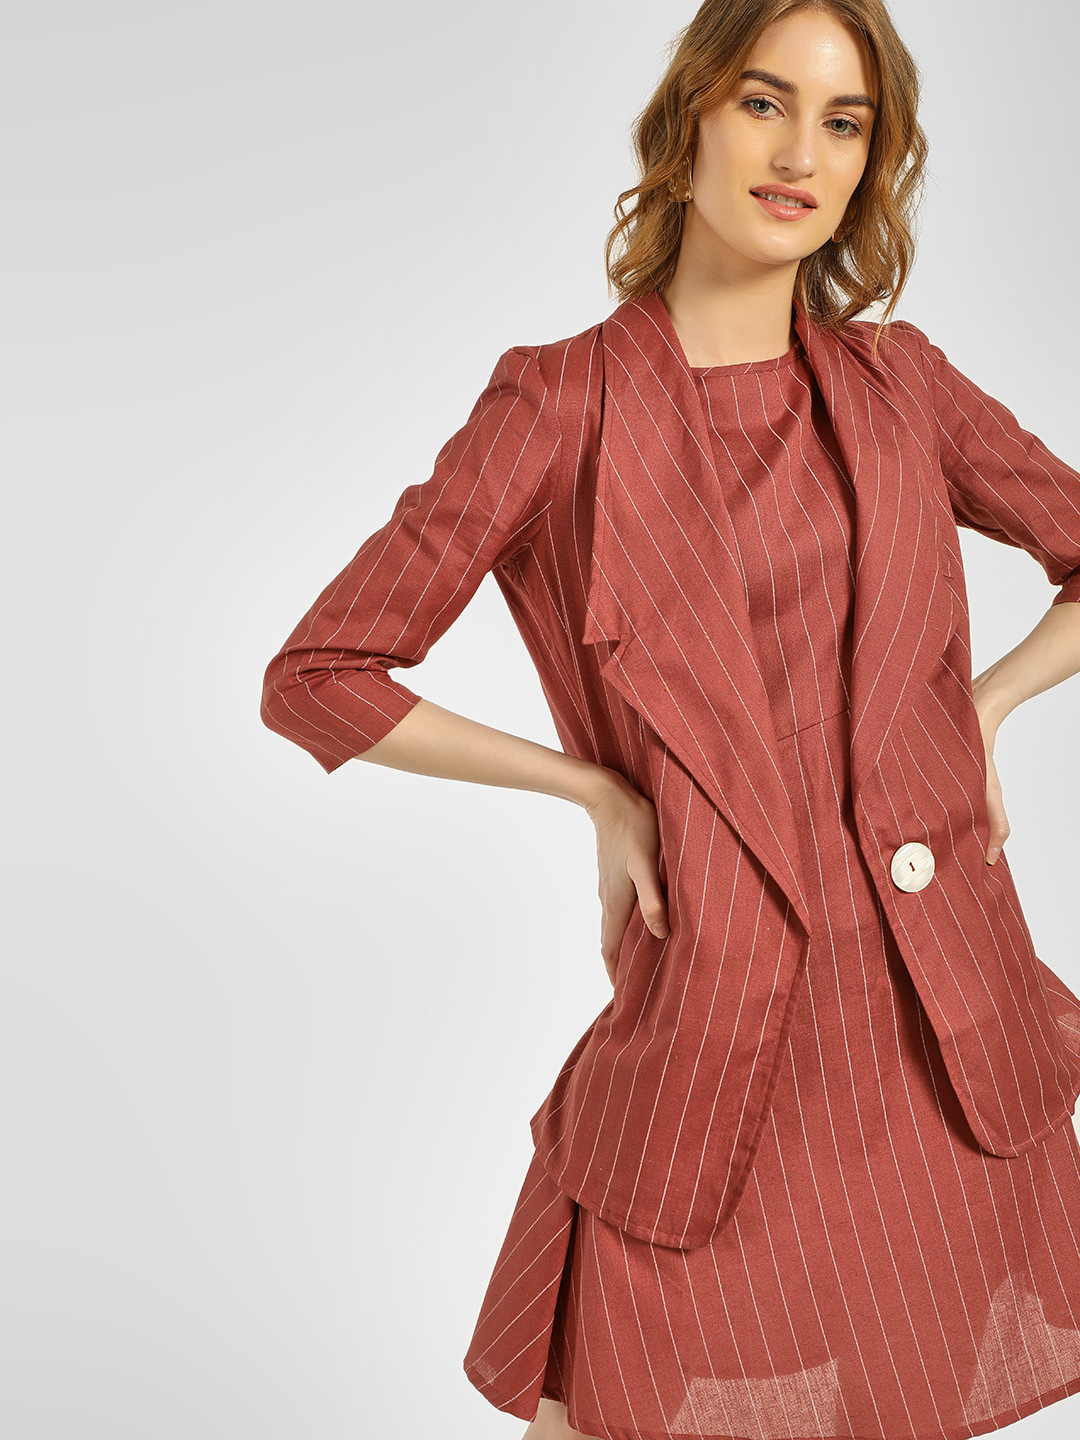 Closet Drama Rust Striped Longline Blazer 1